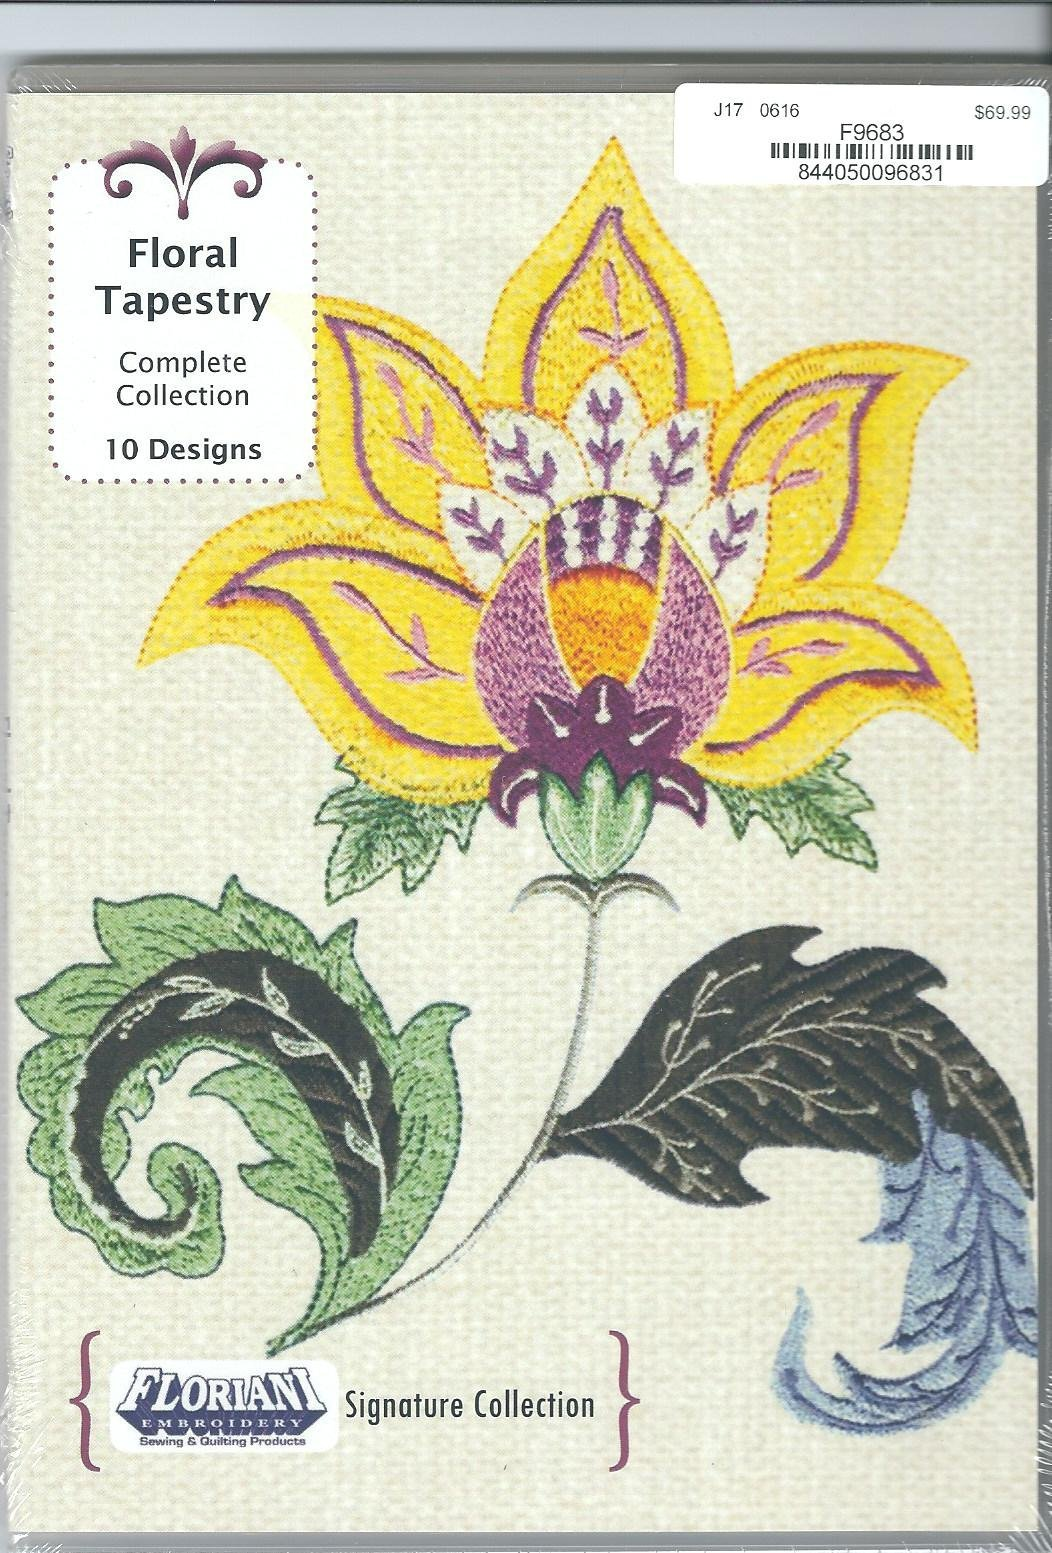 Floral Tapestry - Floriani Embroidery Signature Collection